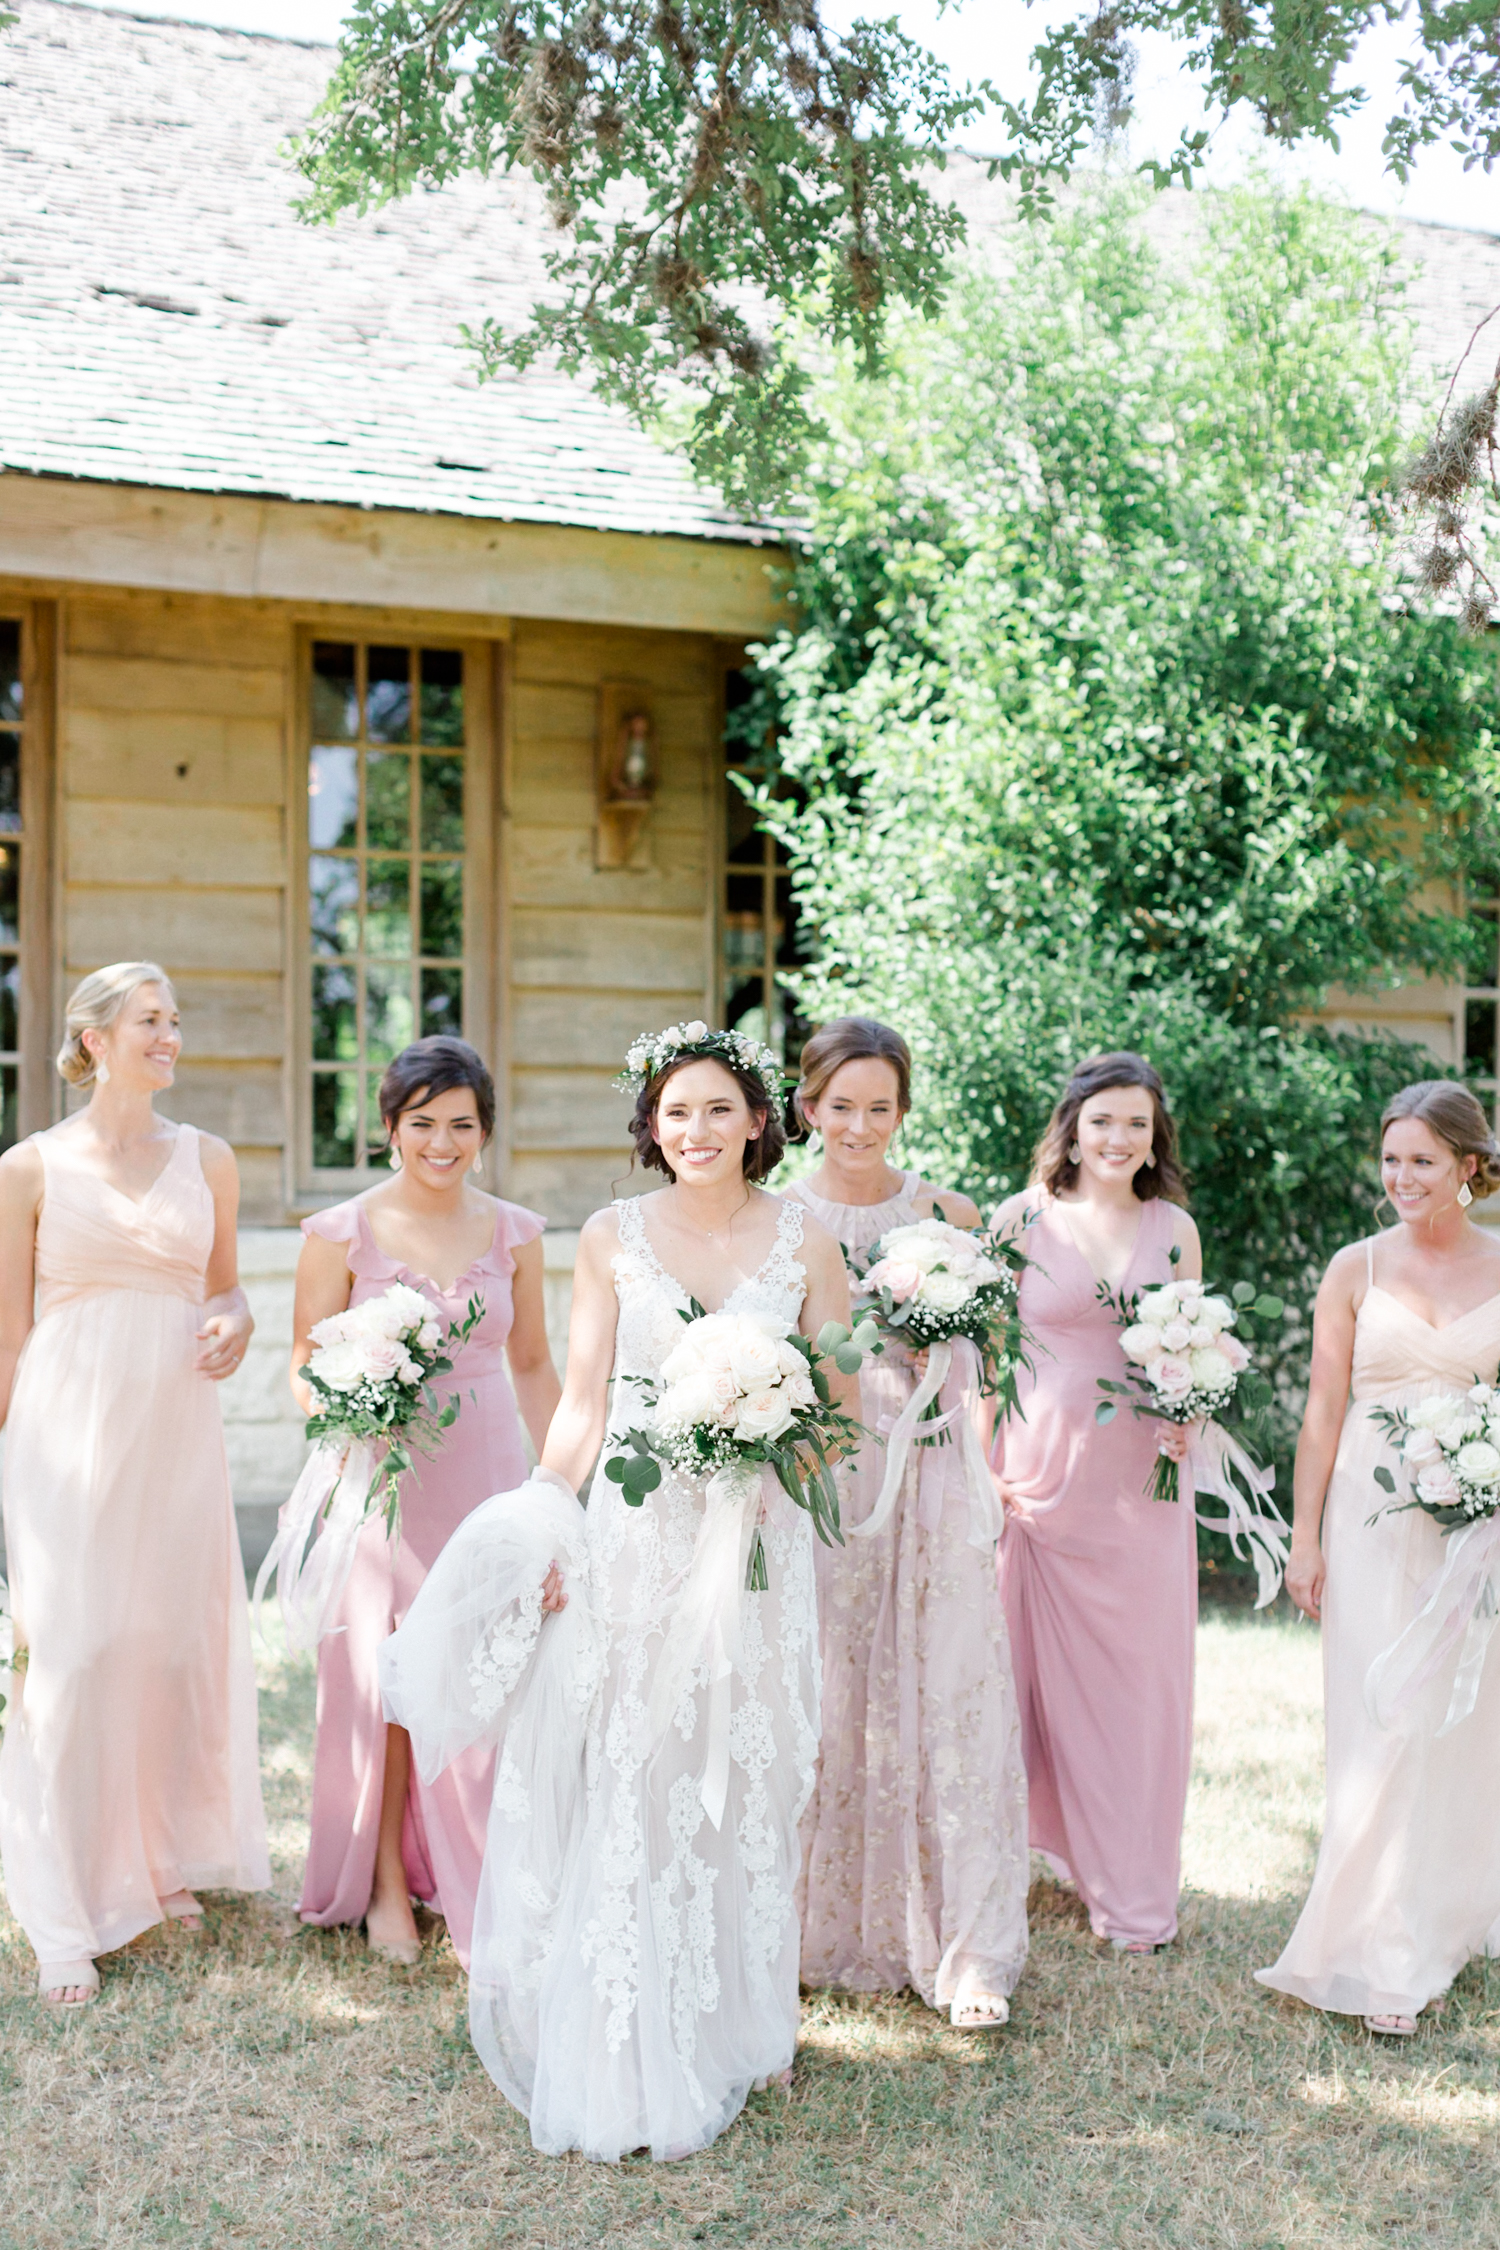 San Antonio Texas Wedding Engagement Photographer Photography Hill Country Texas Old Town Red Bud Hall Summer Blush Ivory Tan Rustic Classic Elegant Wedding San Antonio Austin Texas photographer 49